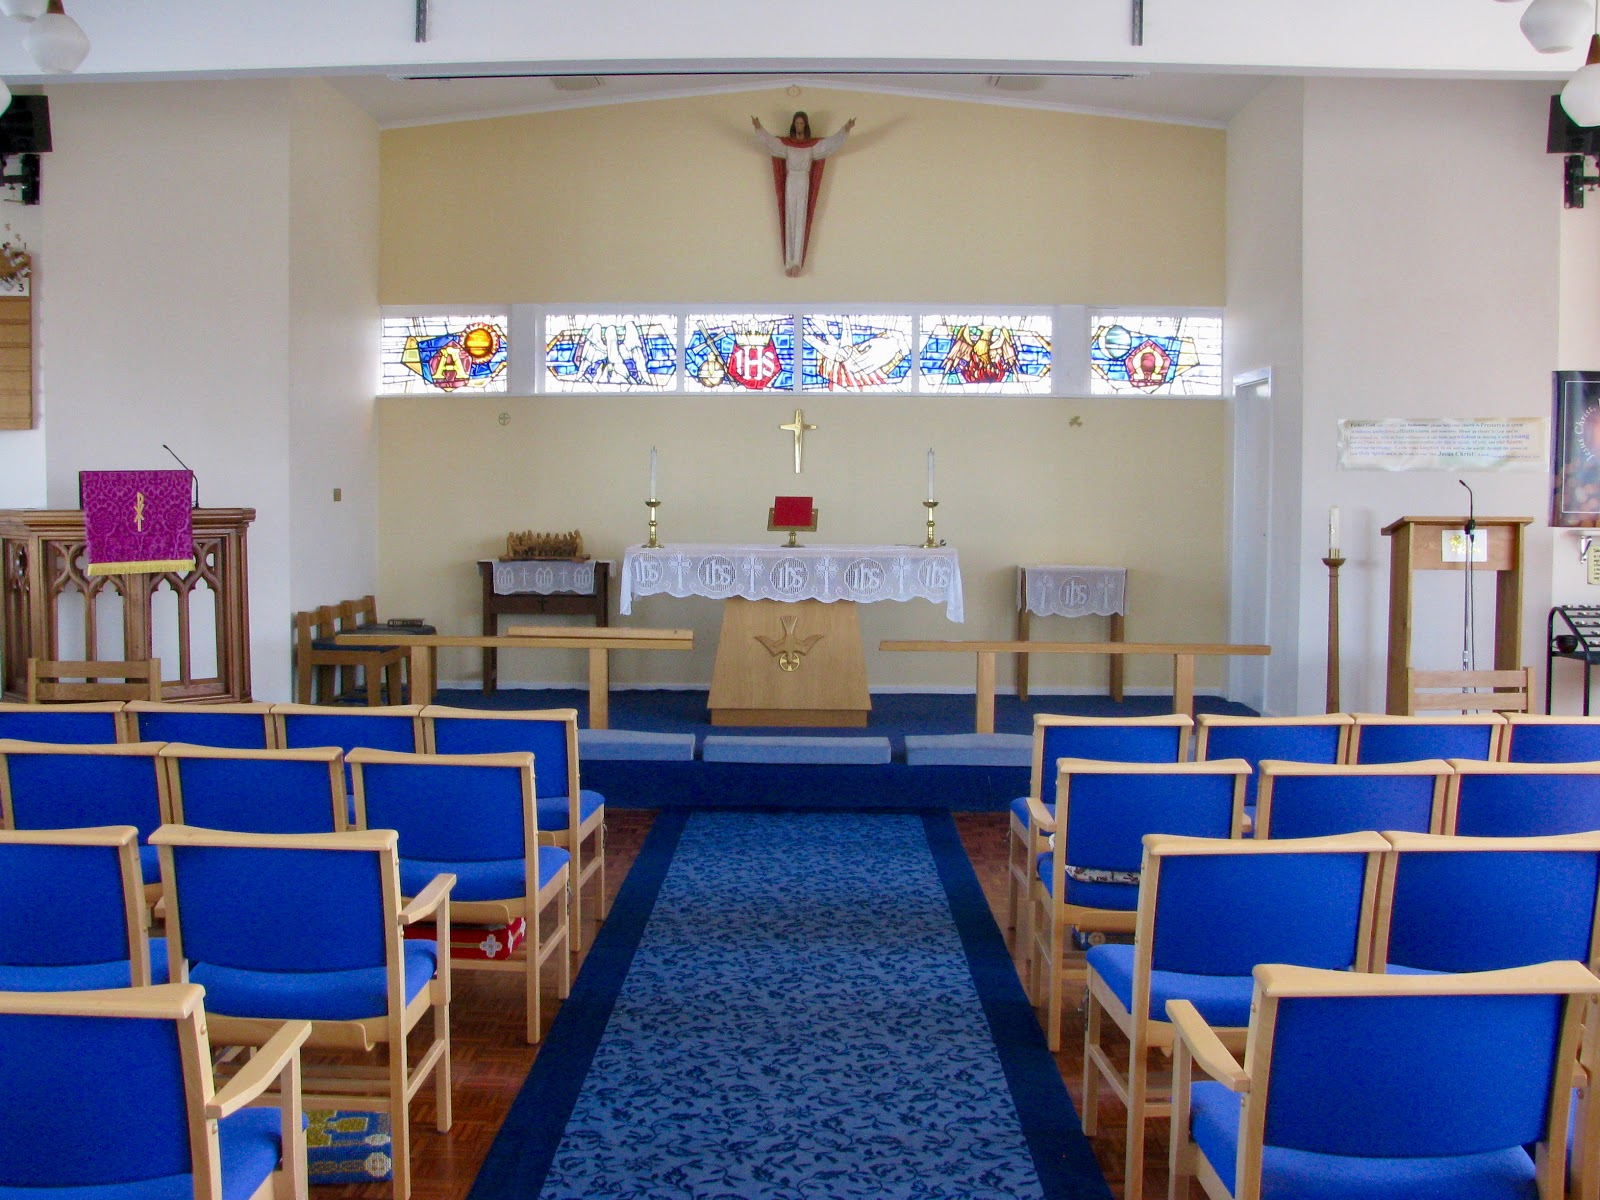 Image taken from left (entrance doors). Blue fabric wooden chairs lectern to left with organ and piano to left, alter to right of image.